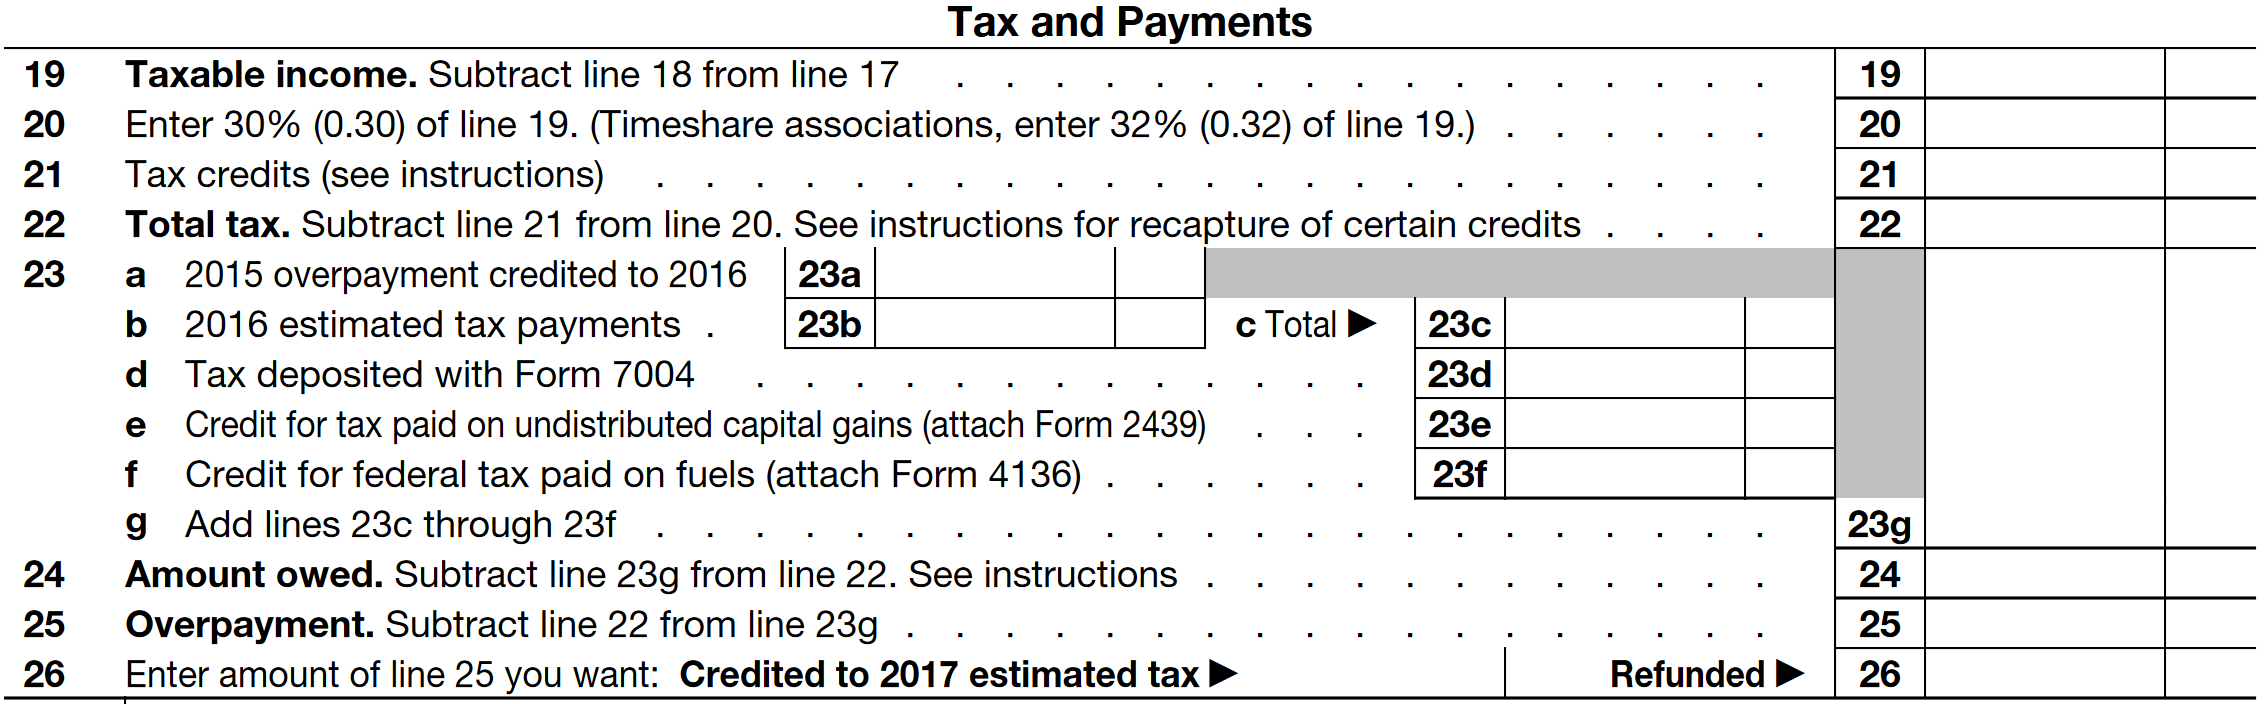 Form 1120-H Example: Complete in a Few Simple Steps »